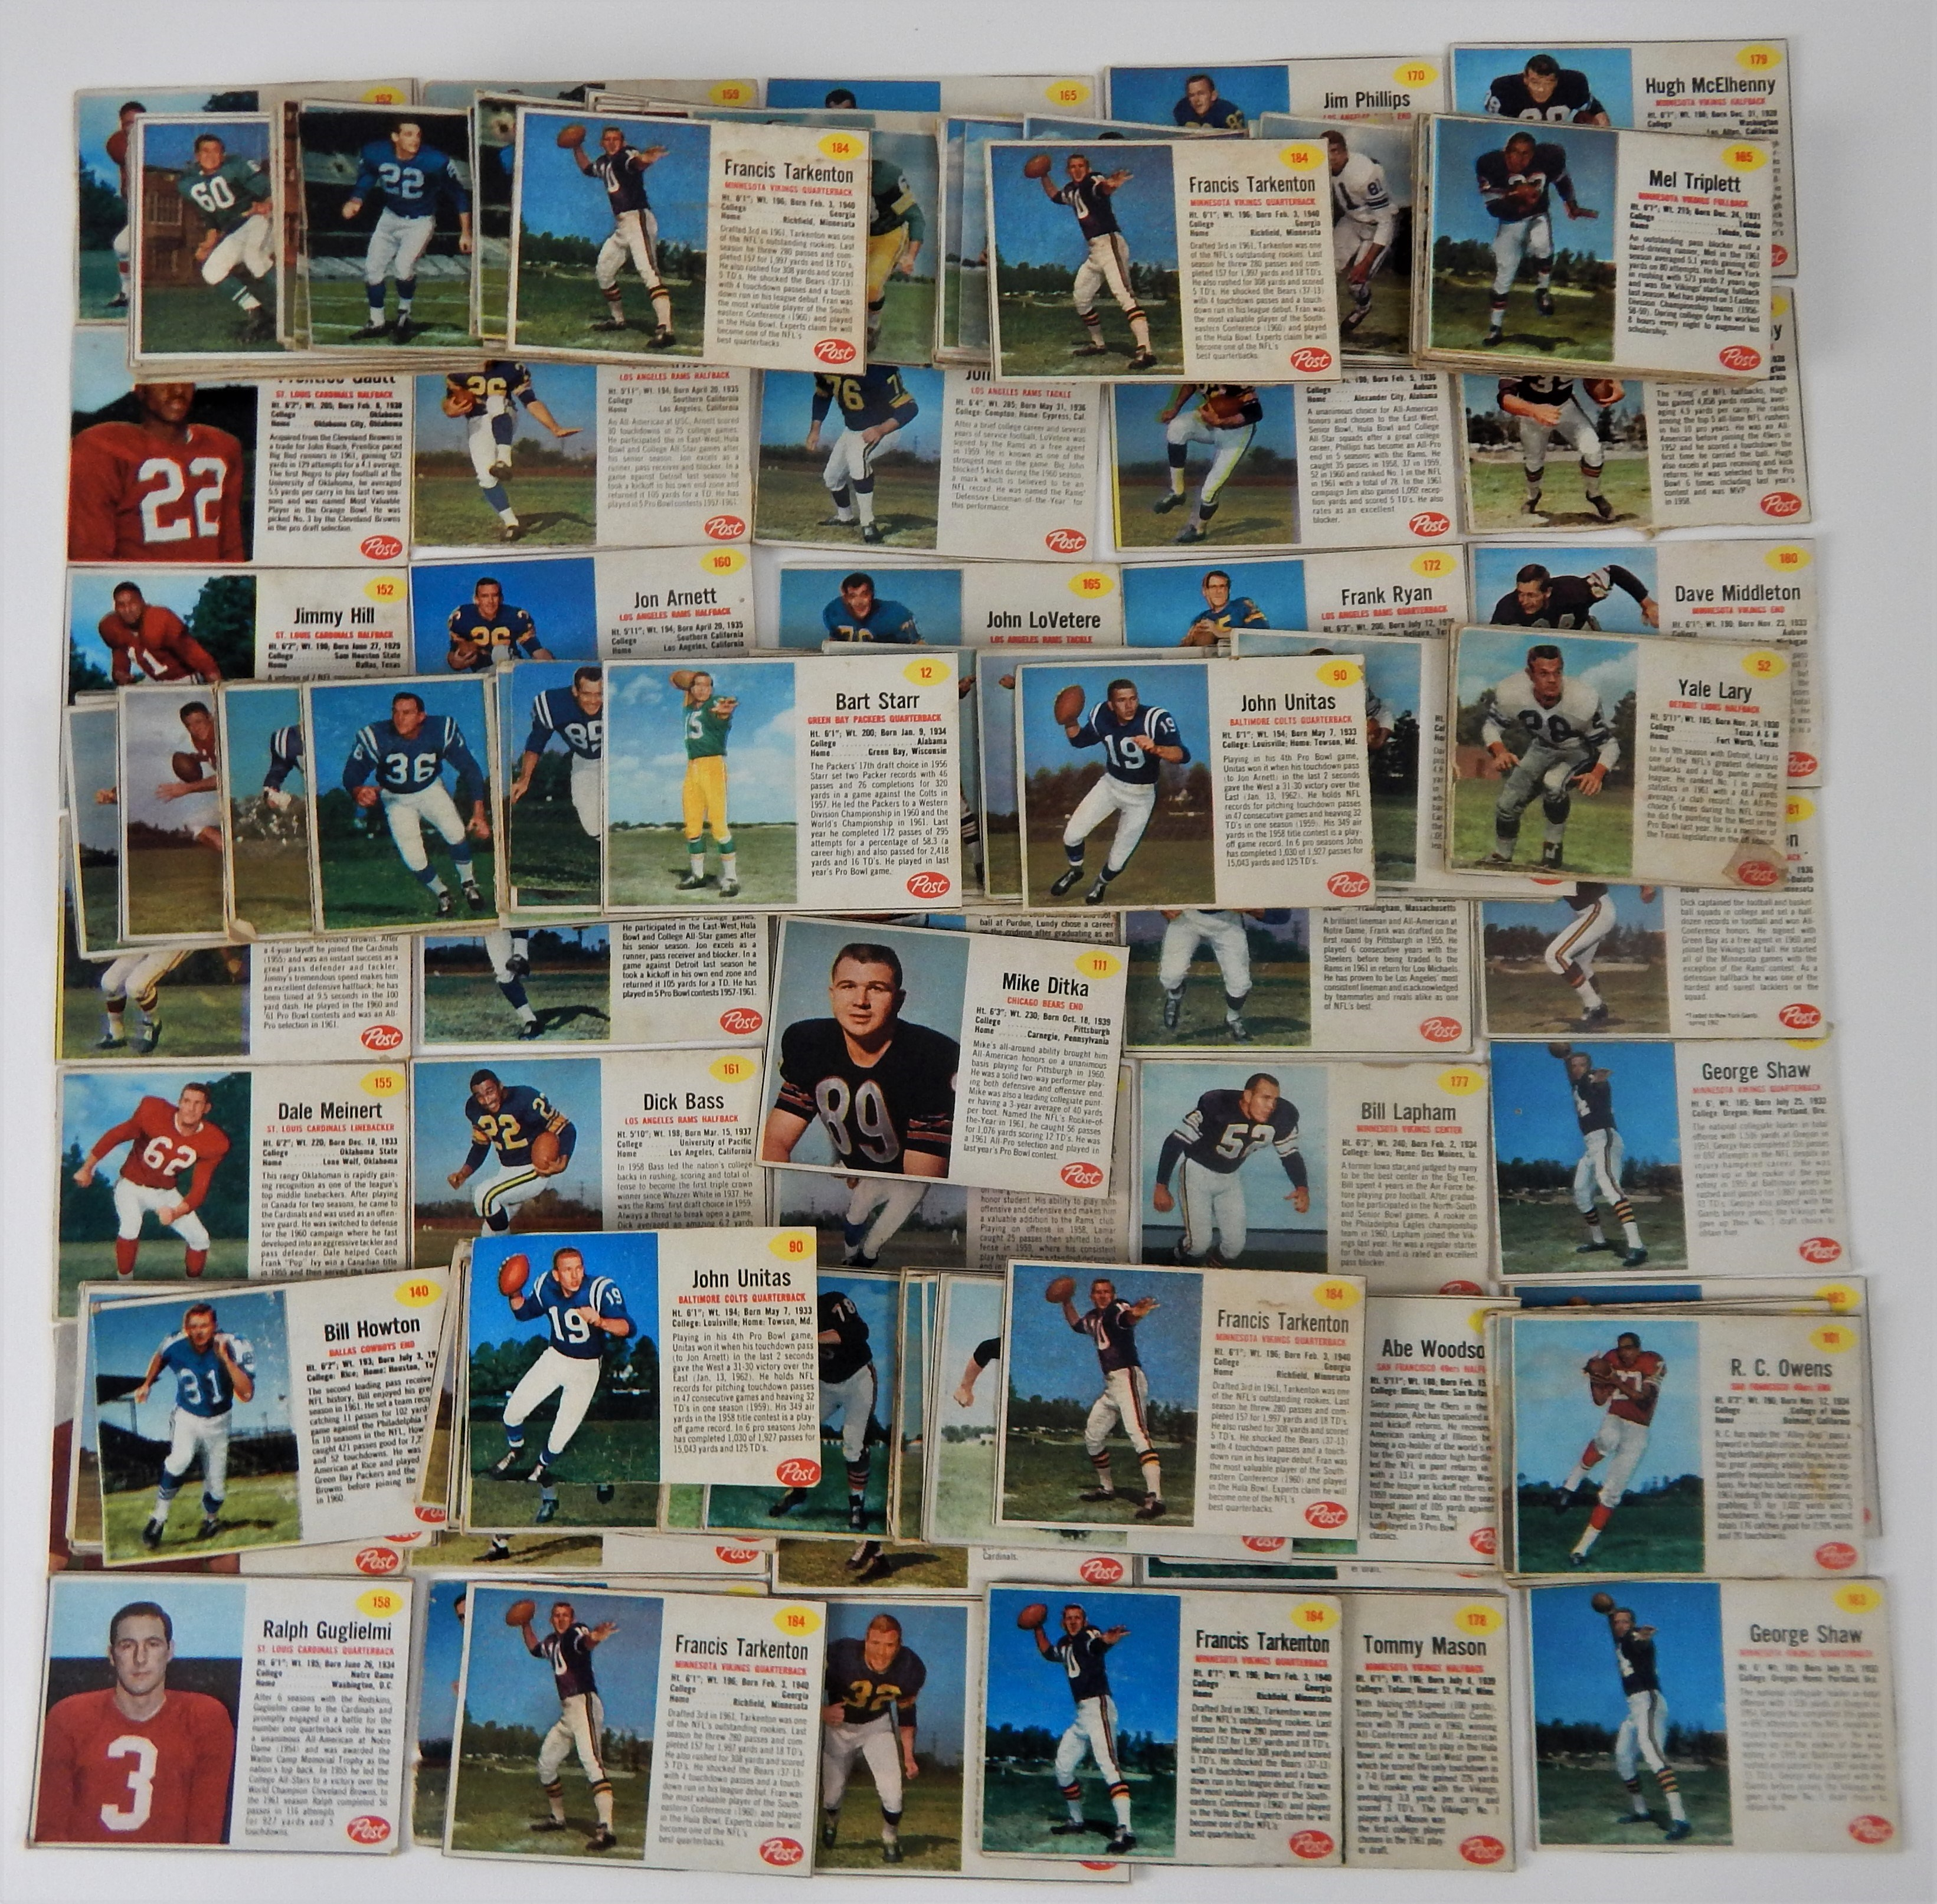 1962 Post Cereal Football Card Starter Set with Stars (211)